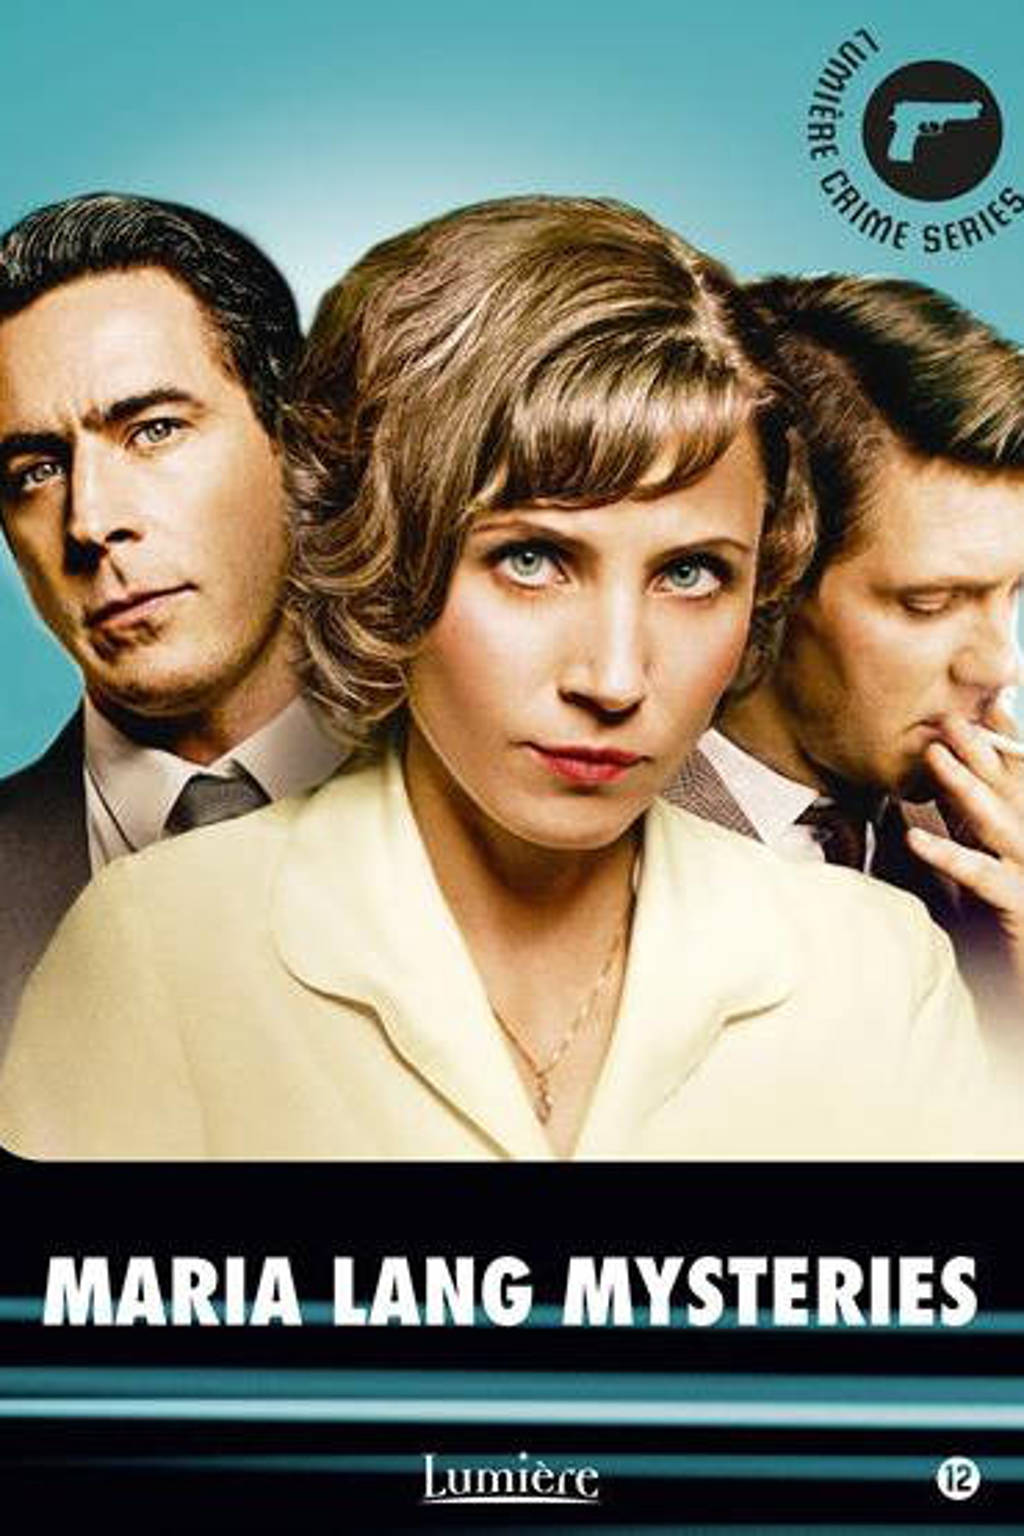 Maria Lang mysteries (DVD)